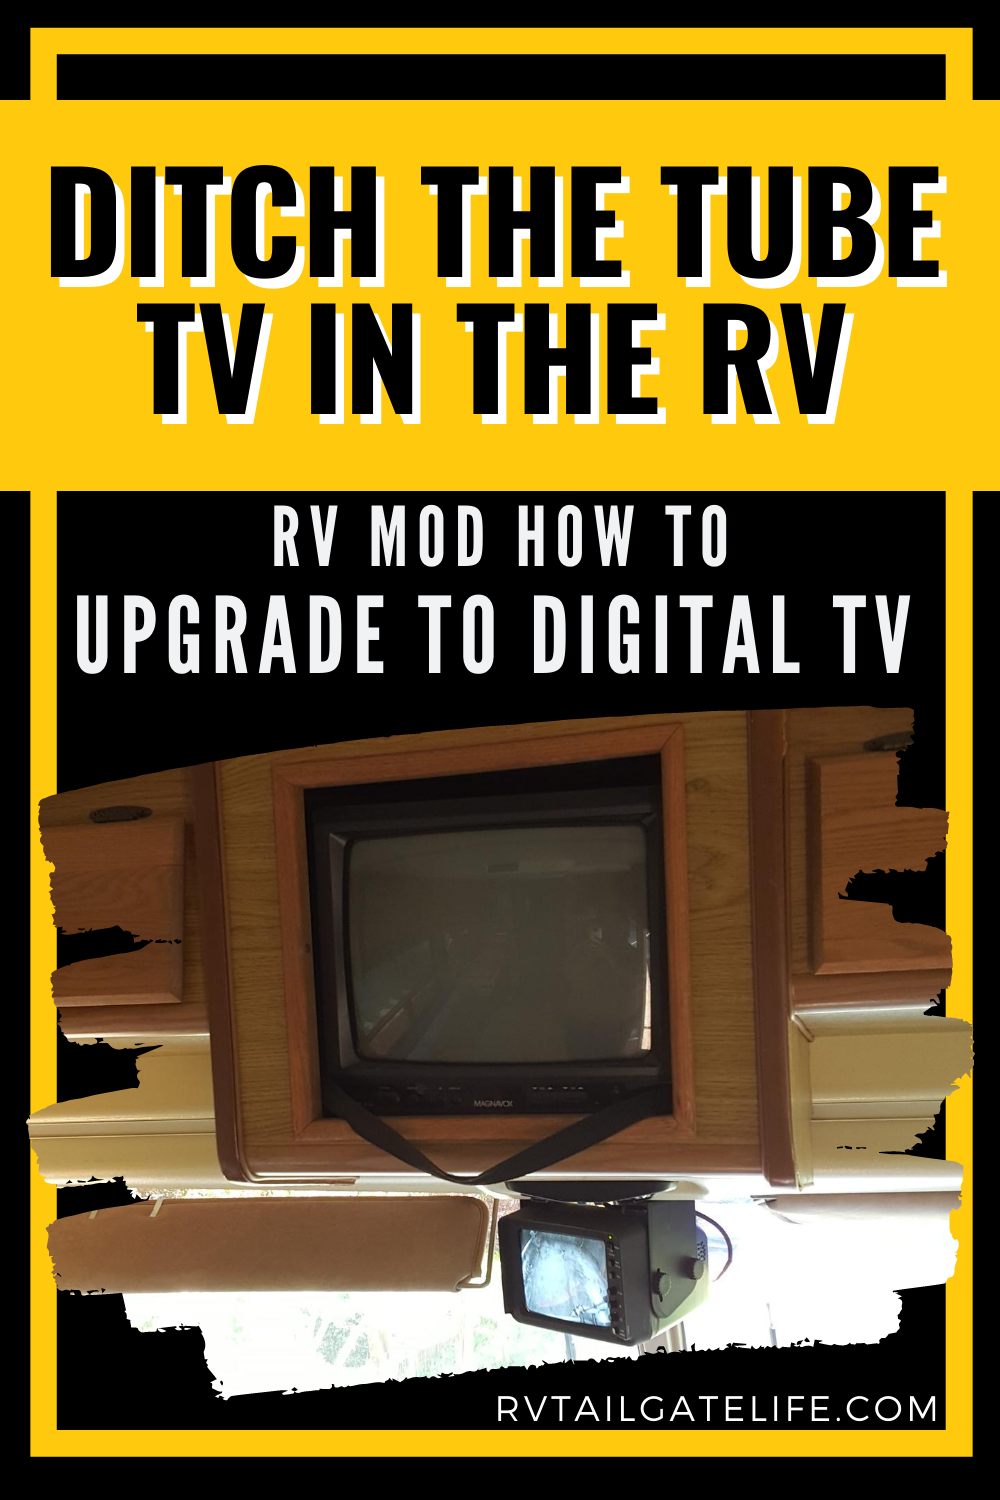 How To Upgrade To Digital Flat Screen Tv In The Rv Rv Tailgate Life In 2020 Rv Tv Rv Mods Rv